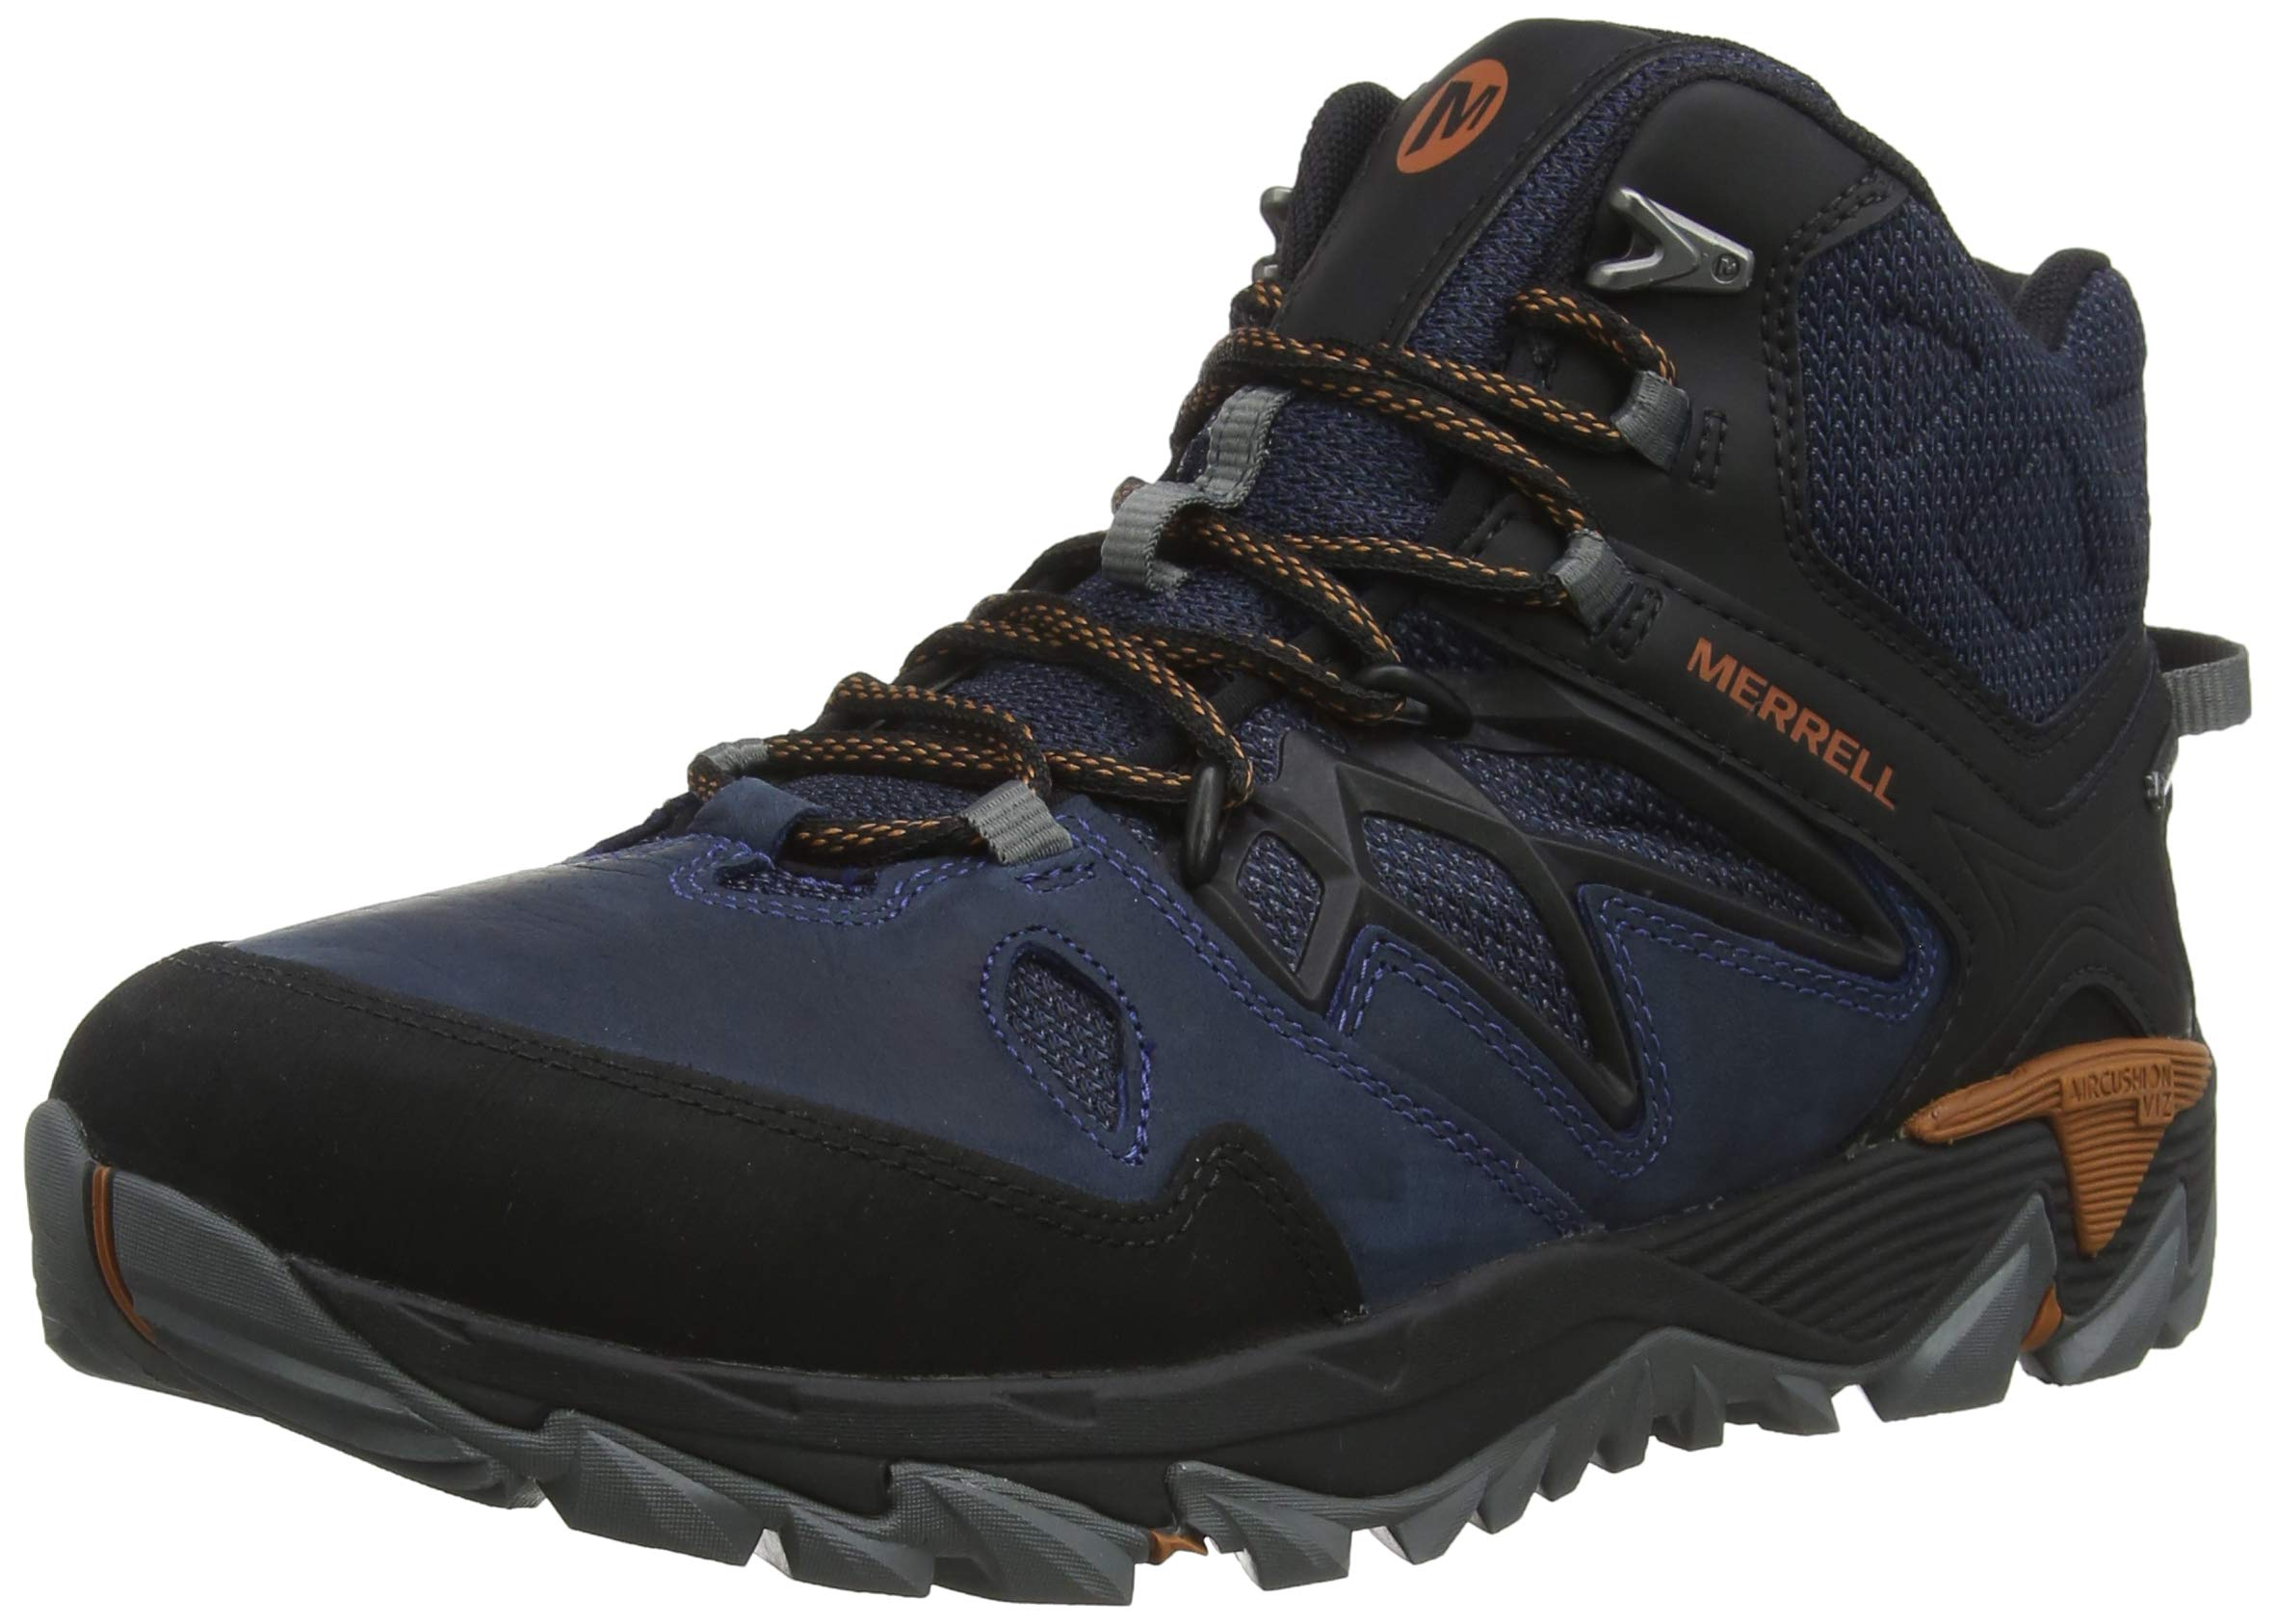 348072e70f6 Merrell Men's's All Out All Out Blaze 2 Mid GTX High Rise Hiking Boots -  UKsportsOutdoors